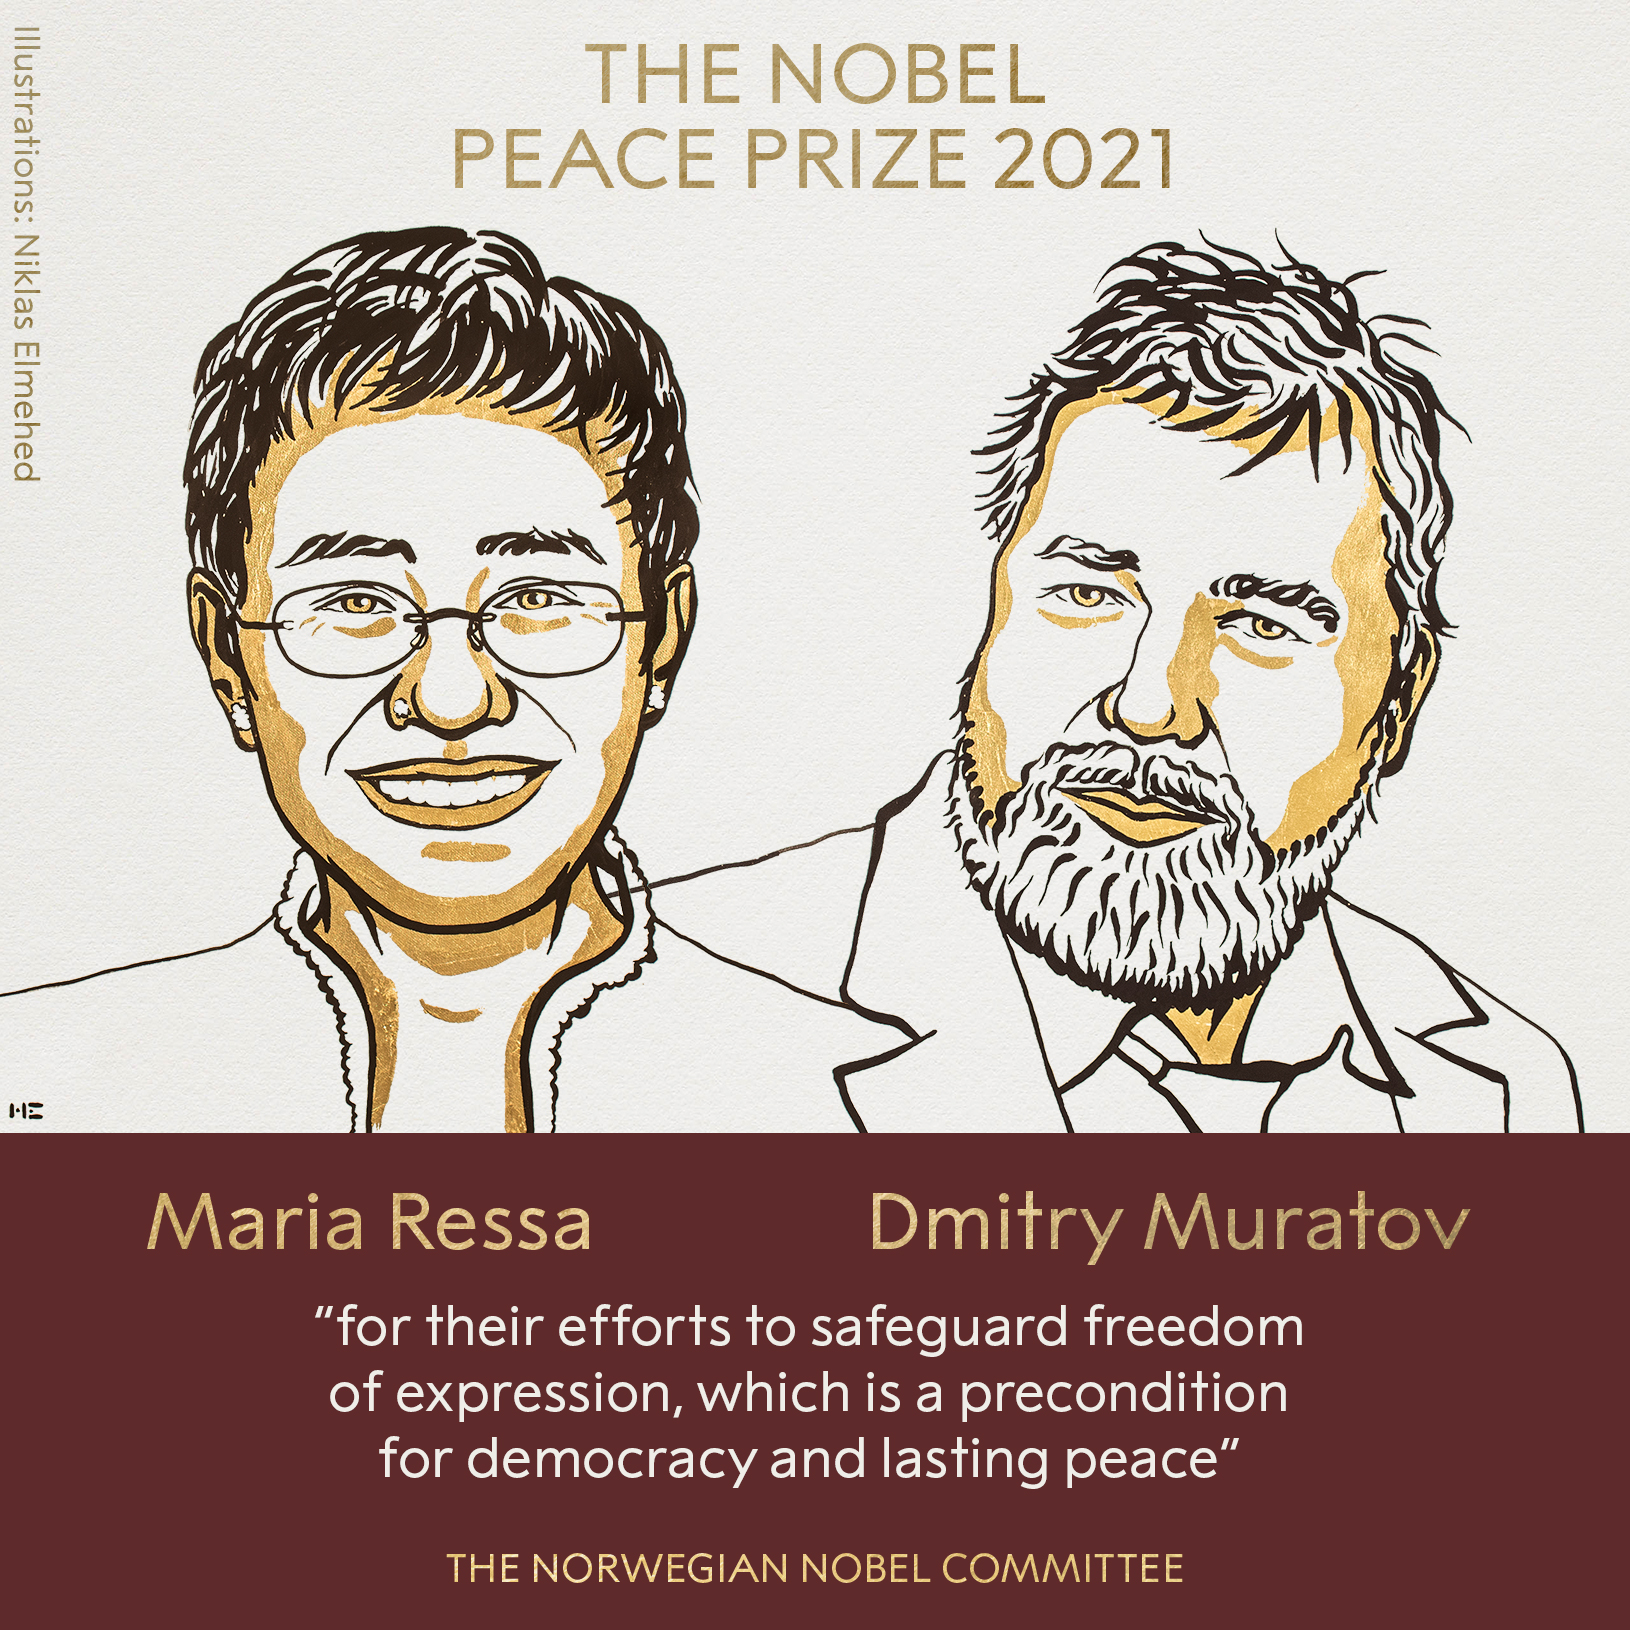 Journalists Maria Ressa and Dmitry Muratov receive the 2021 Nobel Peace Prize